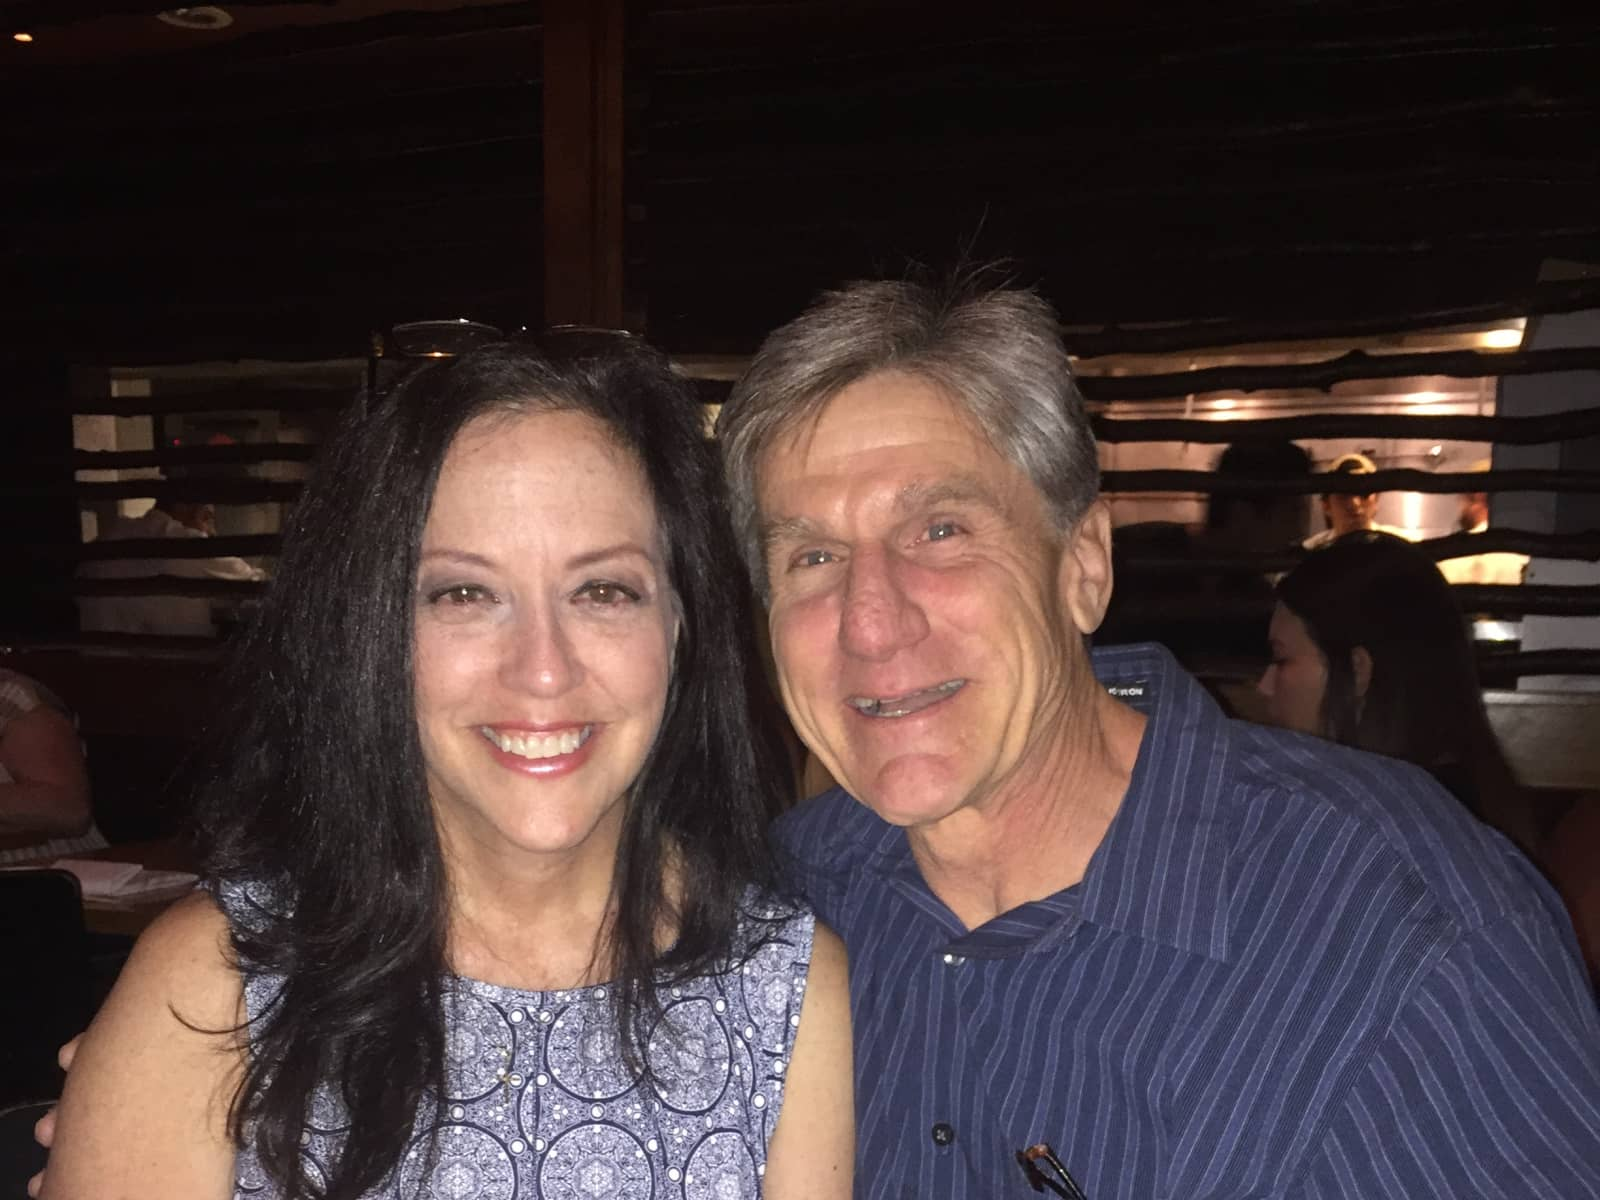 Cynthia & Tim from San Diego, California, United States